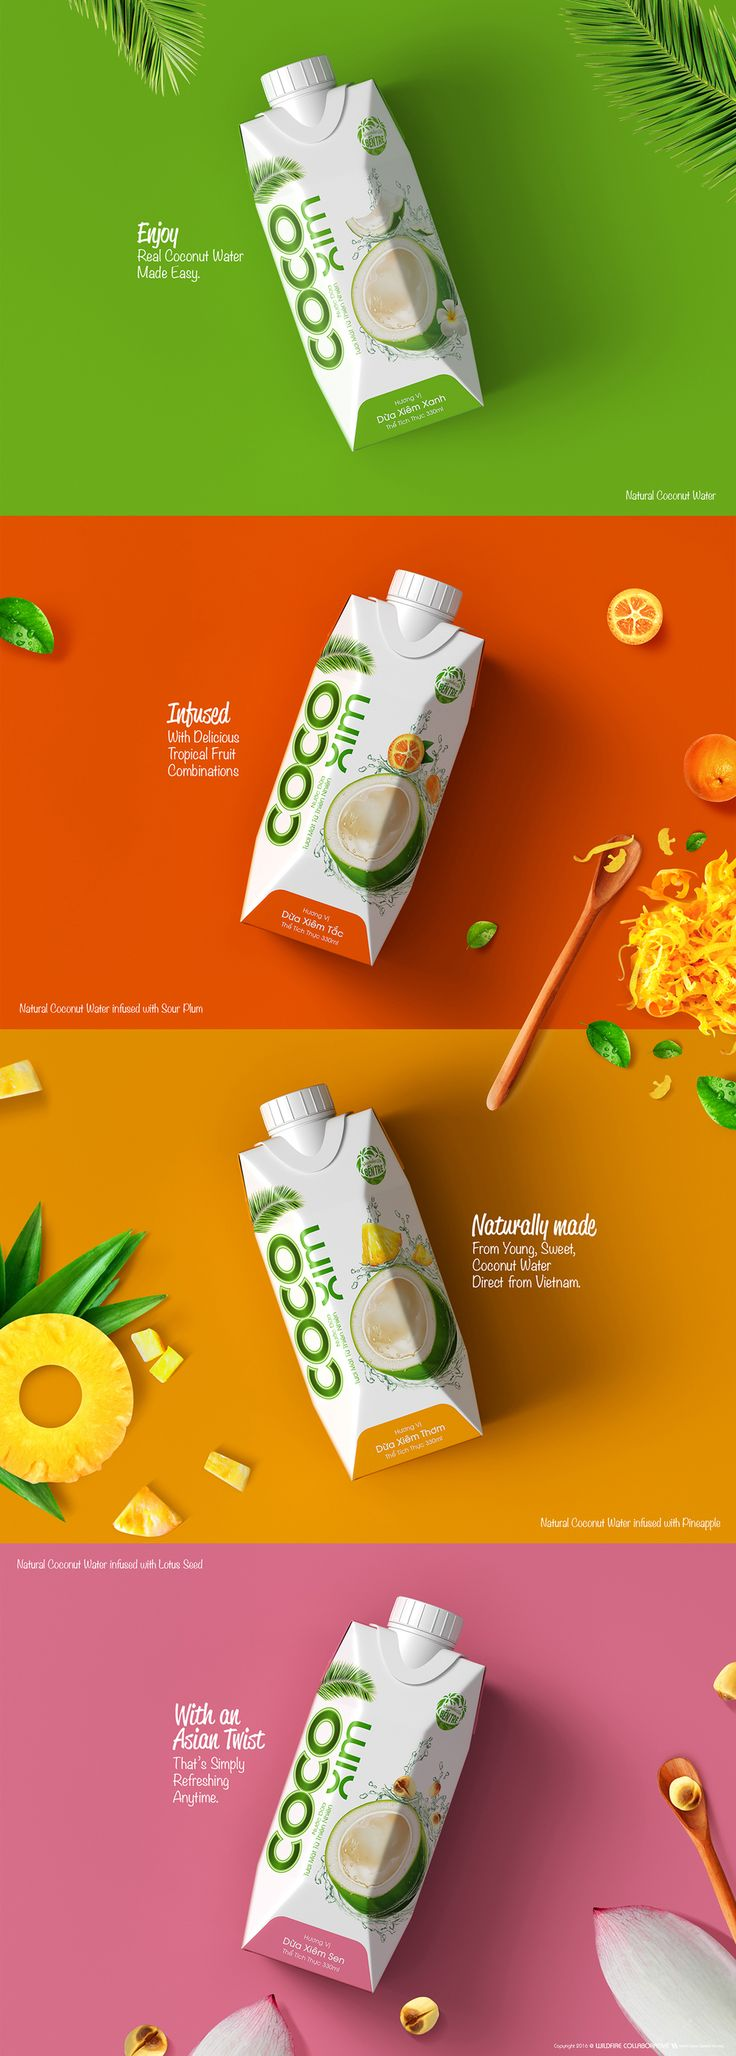 Few things are more refreshing than a cold bottle of coconut water. CocoXim Coconut Water takes that freshness and the relaxation of island life along with delicious flavors.